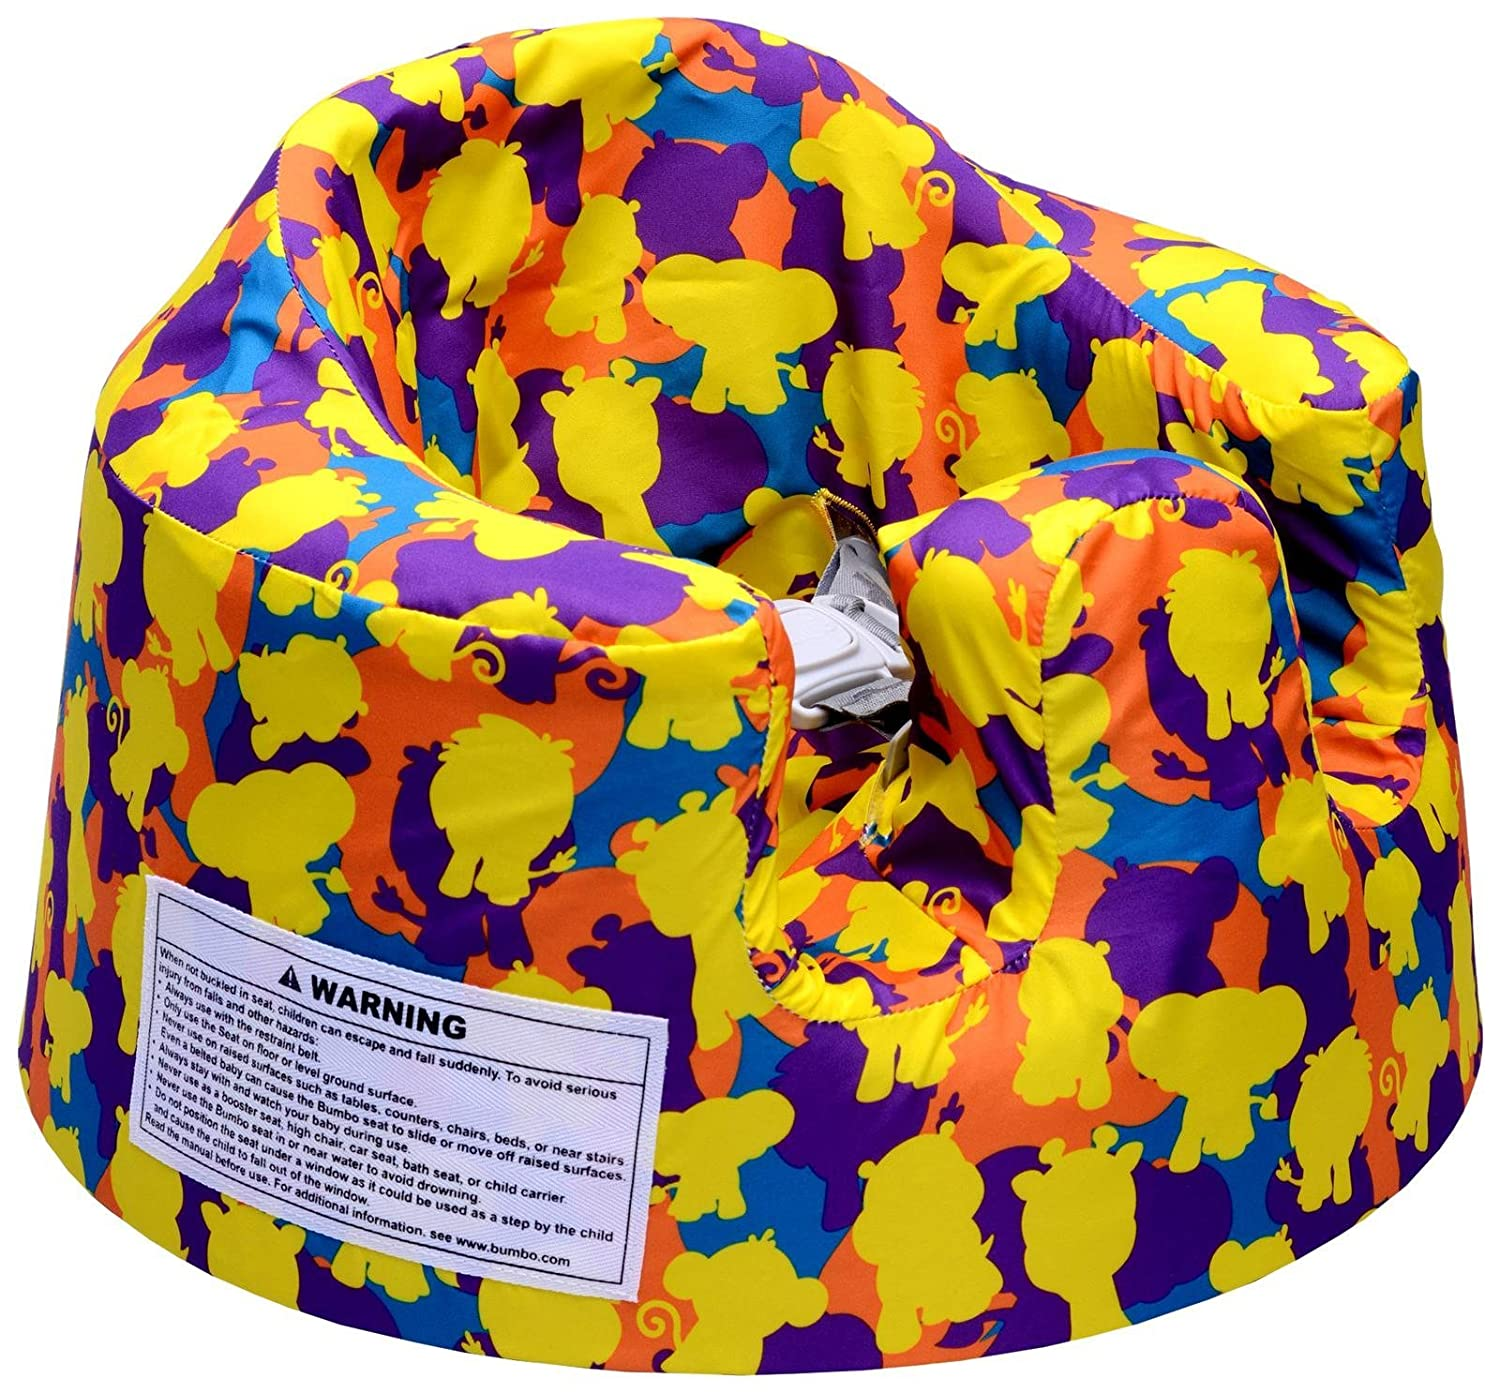 Bumbo B10083 Floor Seat Cover, Multi Color Camouflage